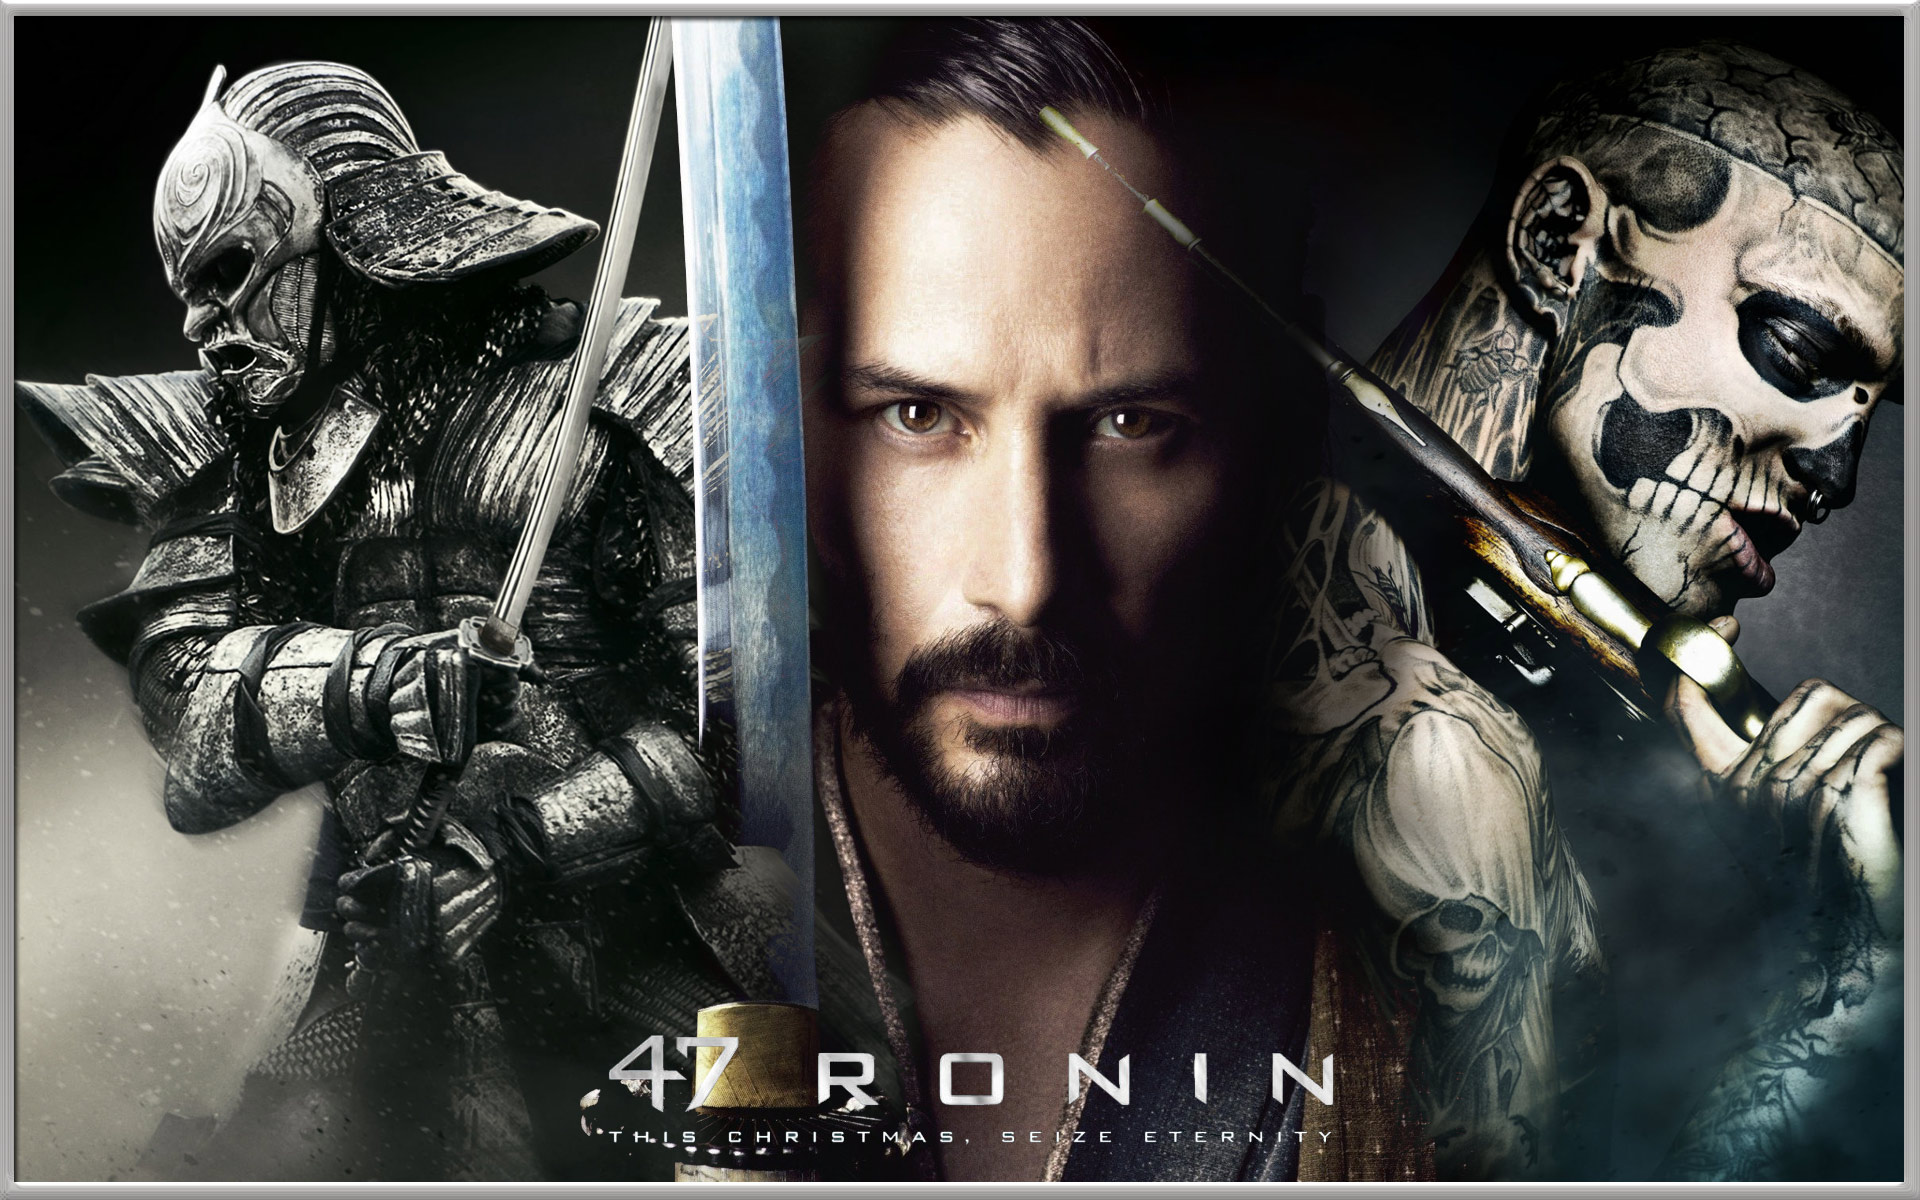 47-Ronin-Movie-Wallpaper